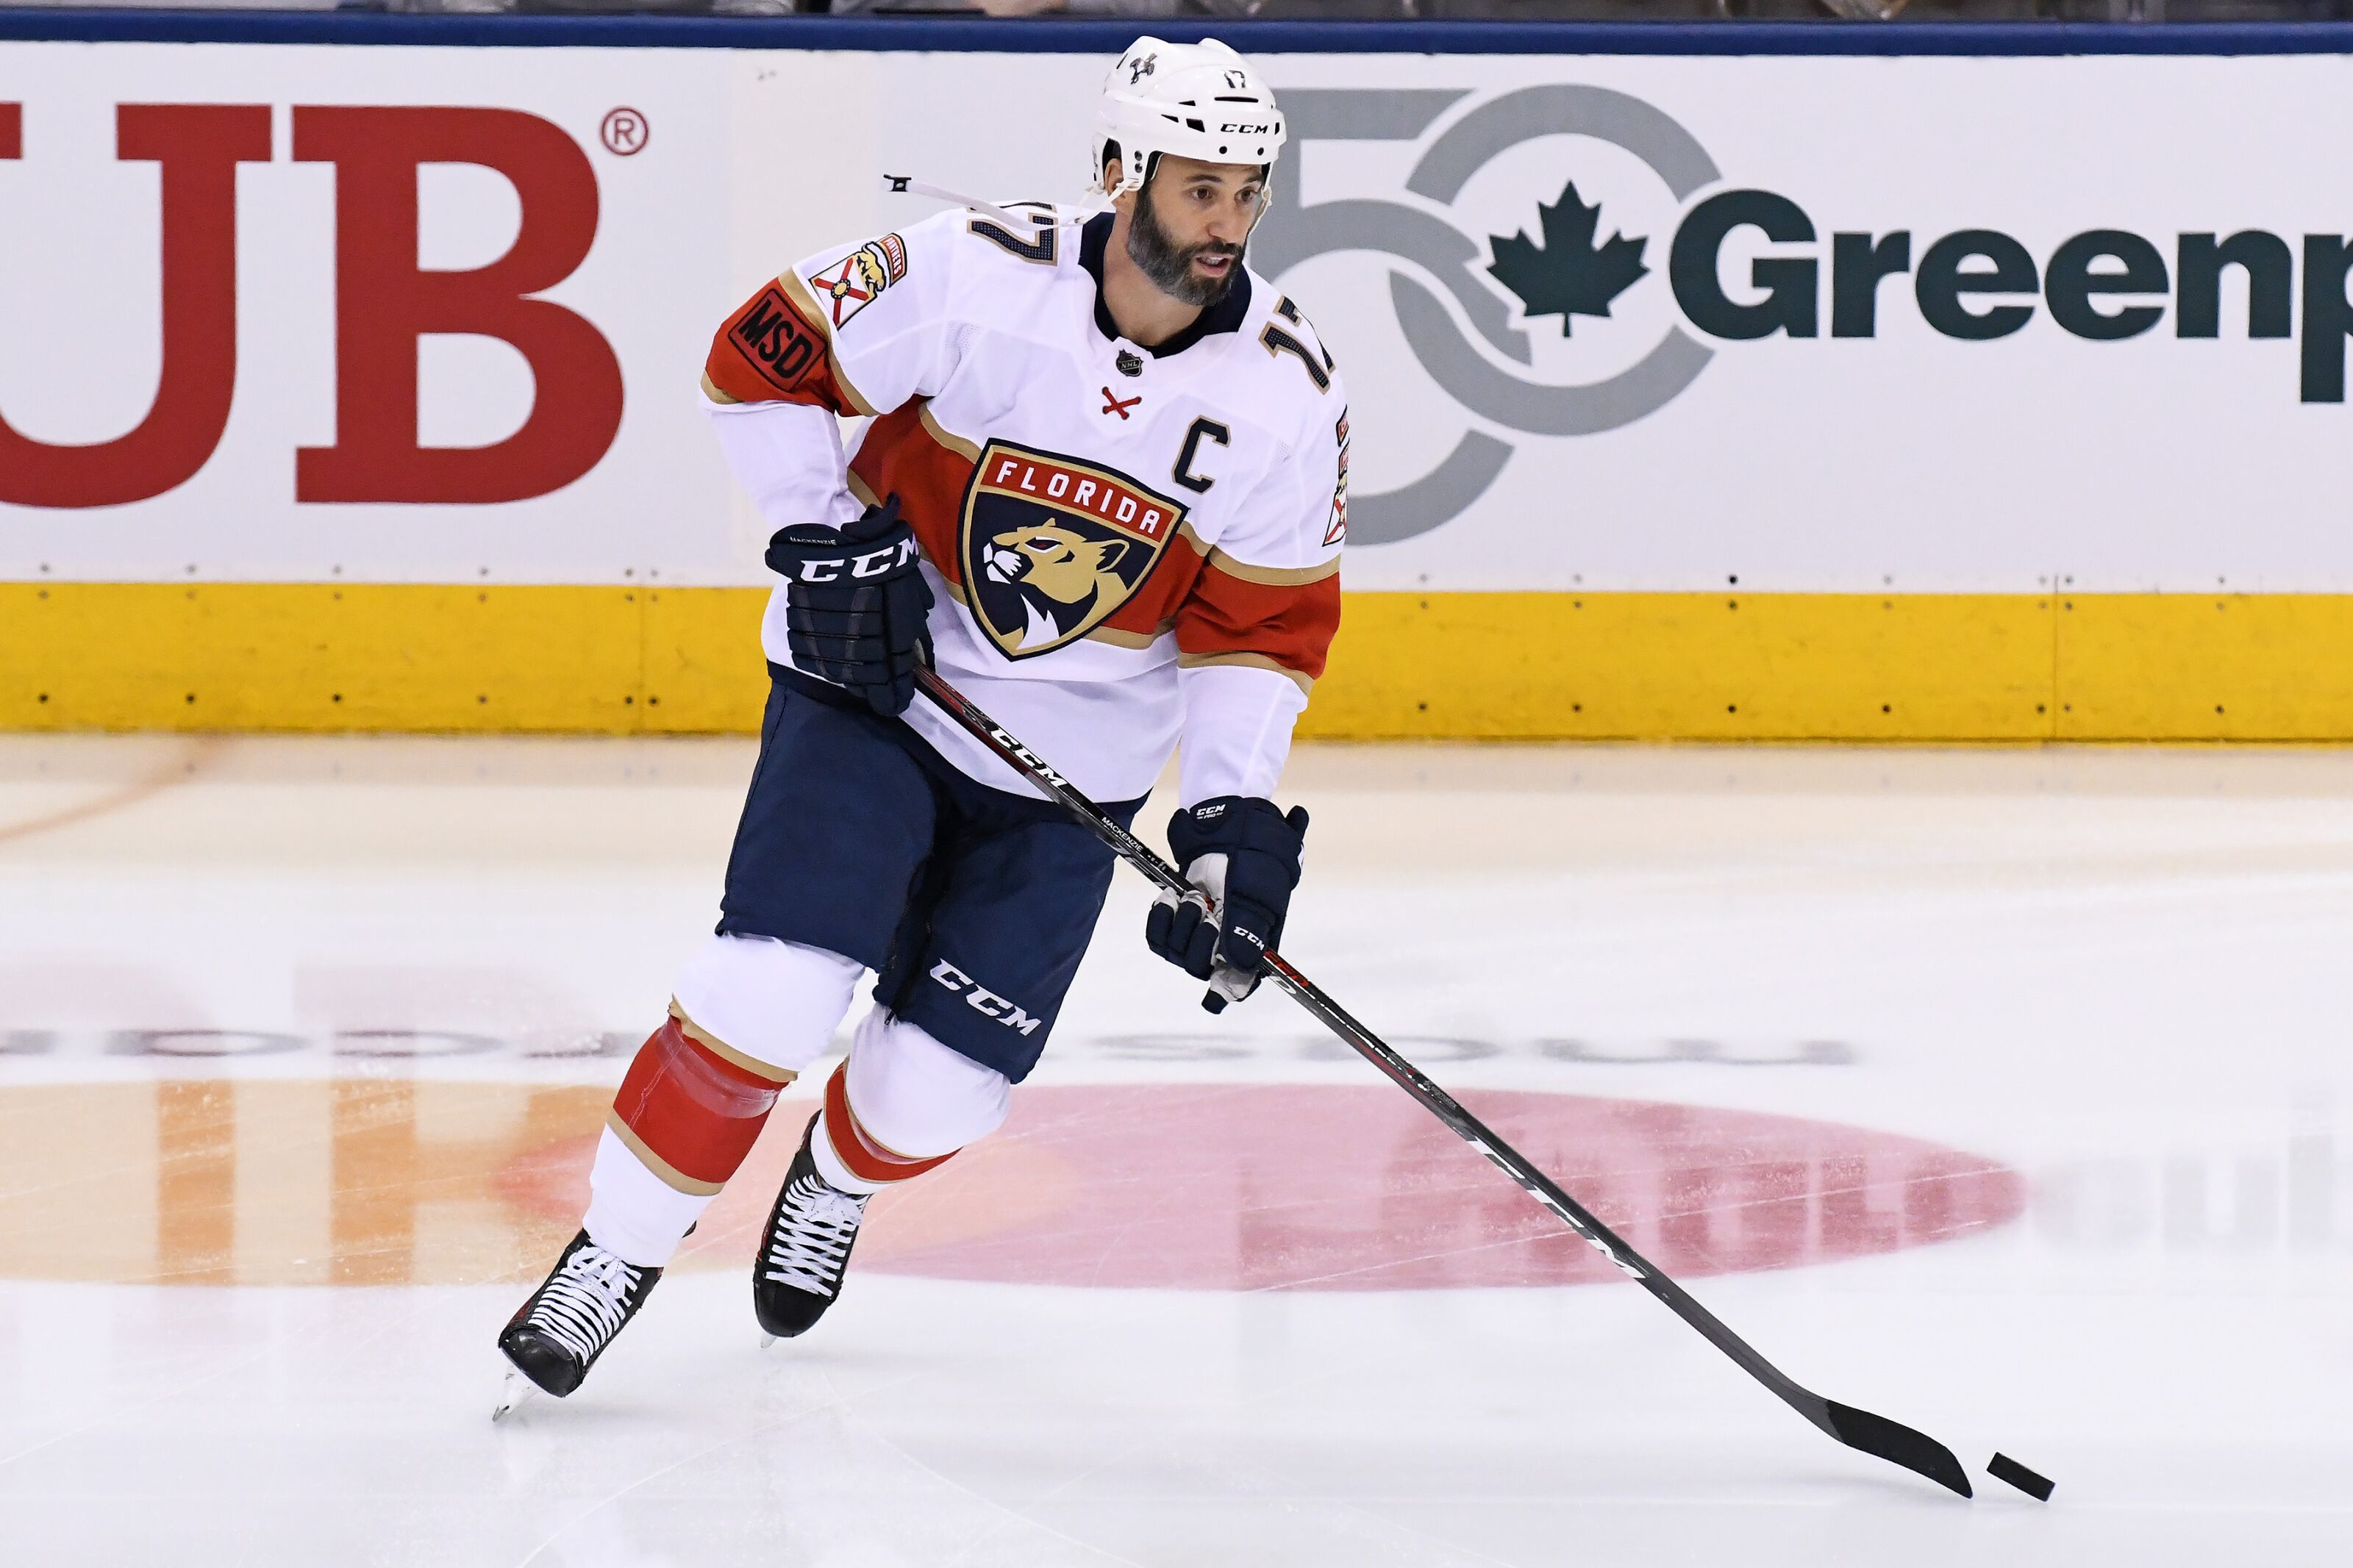 db9386326cb Florida Panthers  Derek MacKenzie Will Retire at the End of the Season